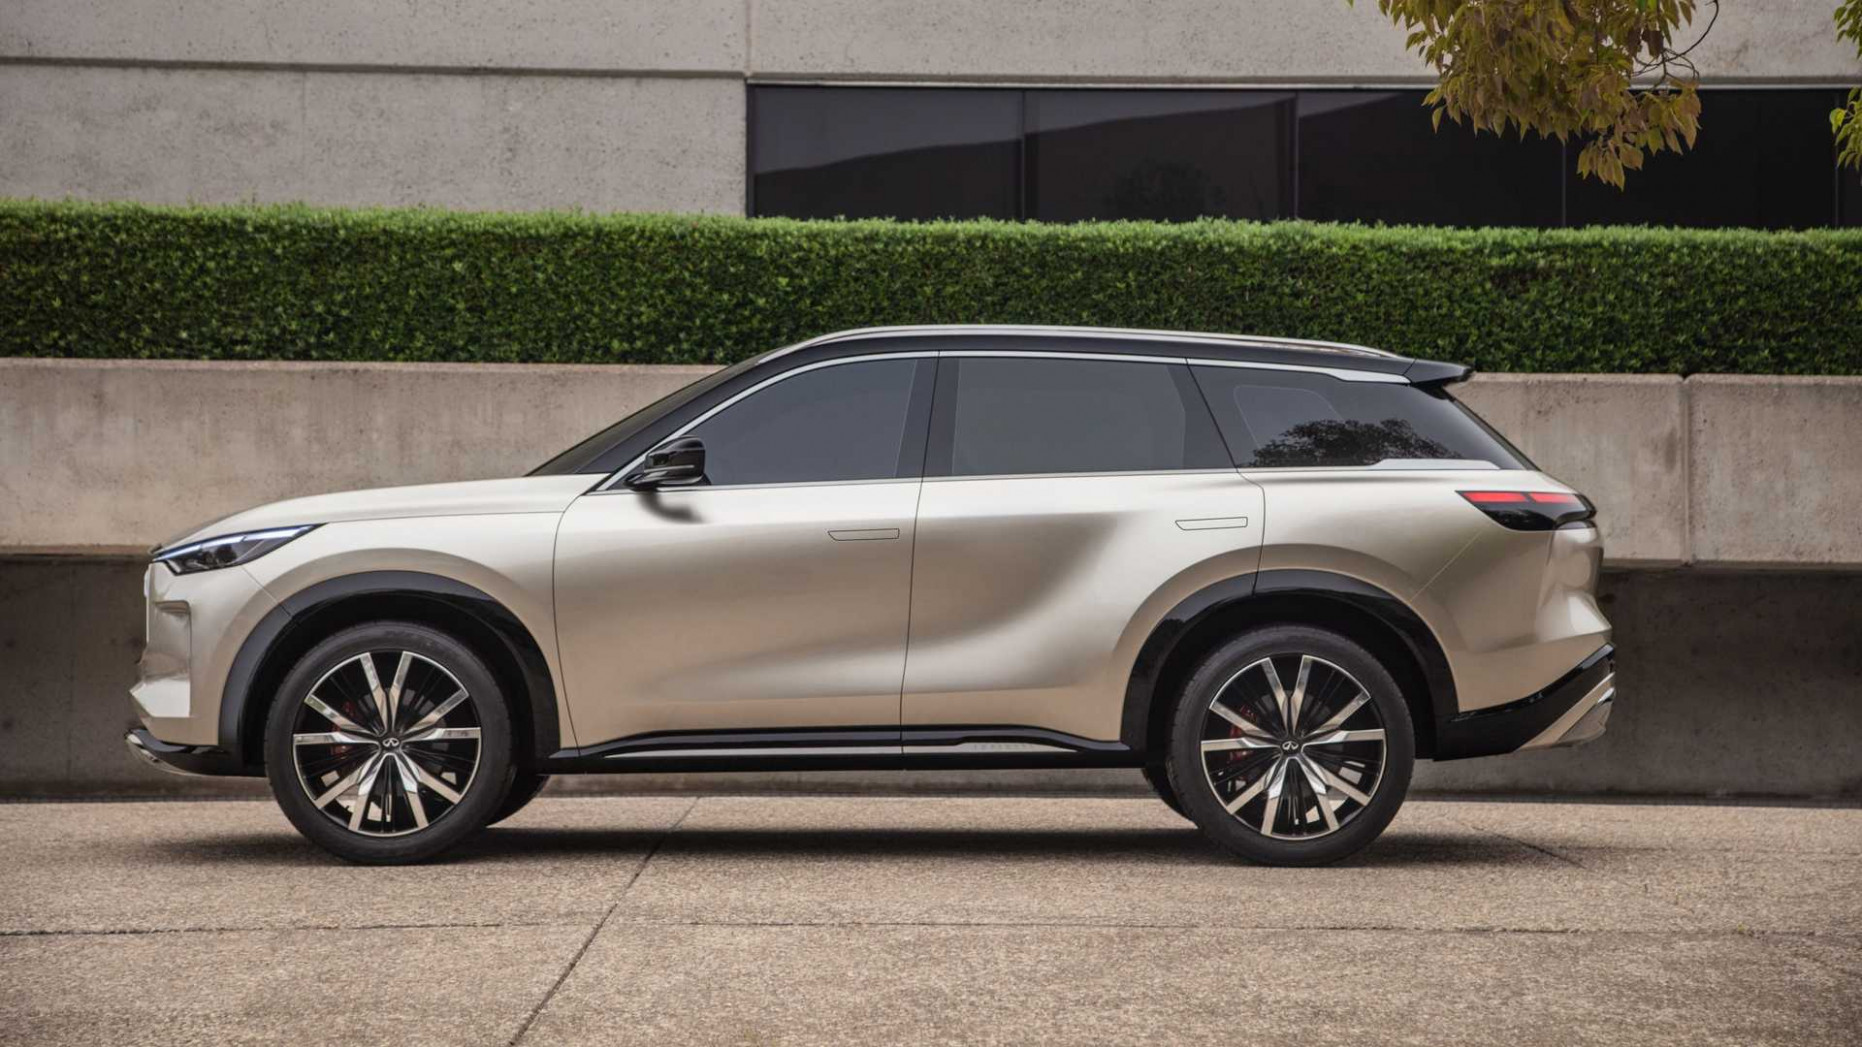 Rumors When Does The 2022 Infiniti Qx60 Come Out